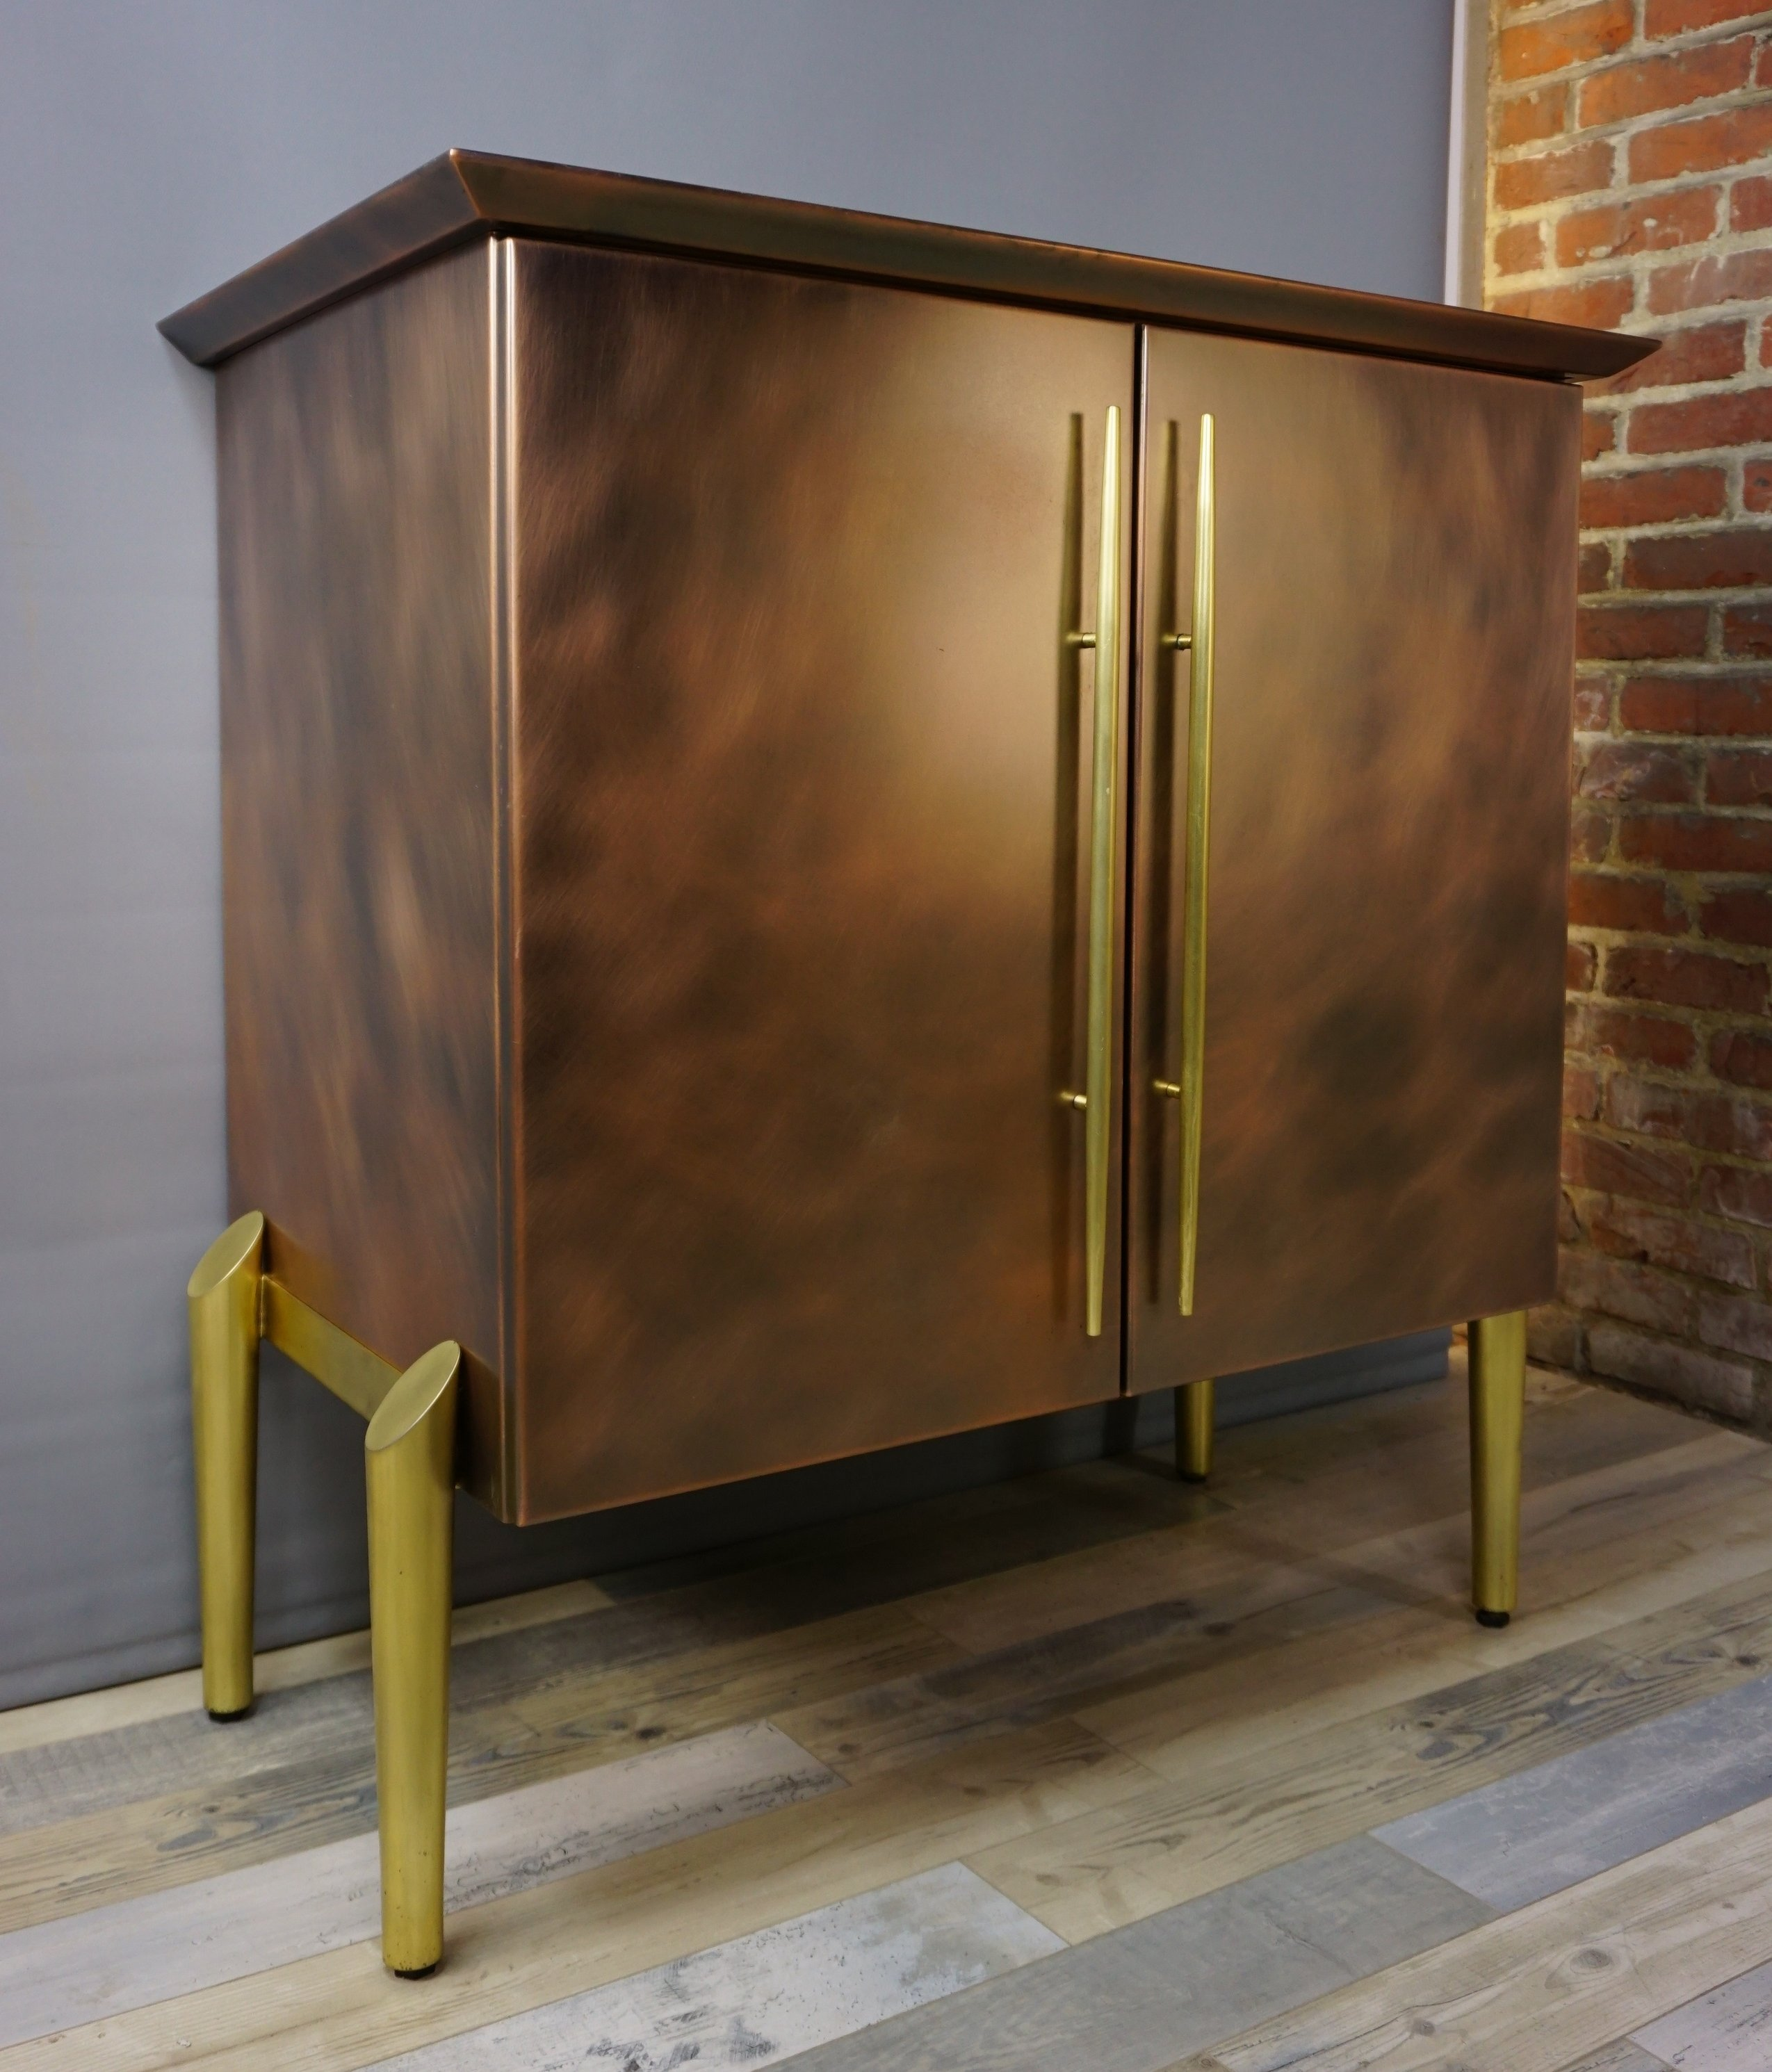 Belgo Chrom Design bar cabinet from the 70s in brass u0026 copper metal & Belgo Chrom Design bar cabinet from the 70s in brass u0026 copper metal ...